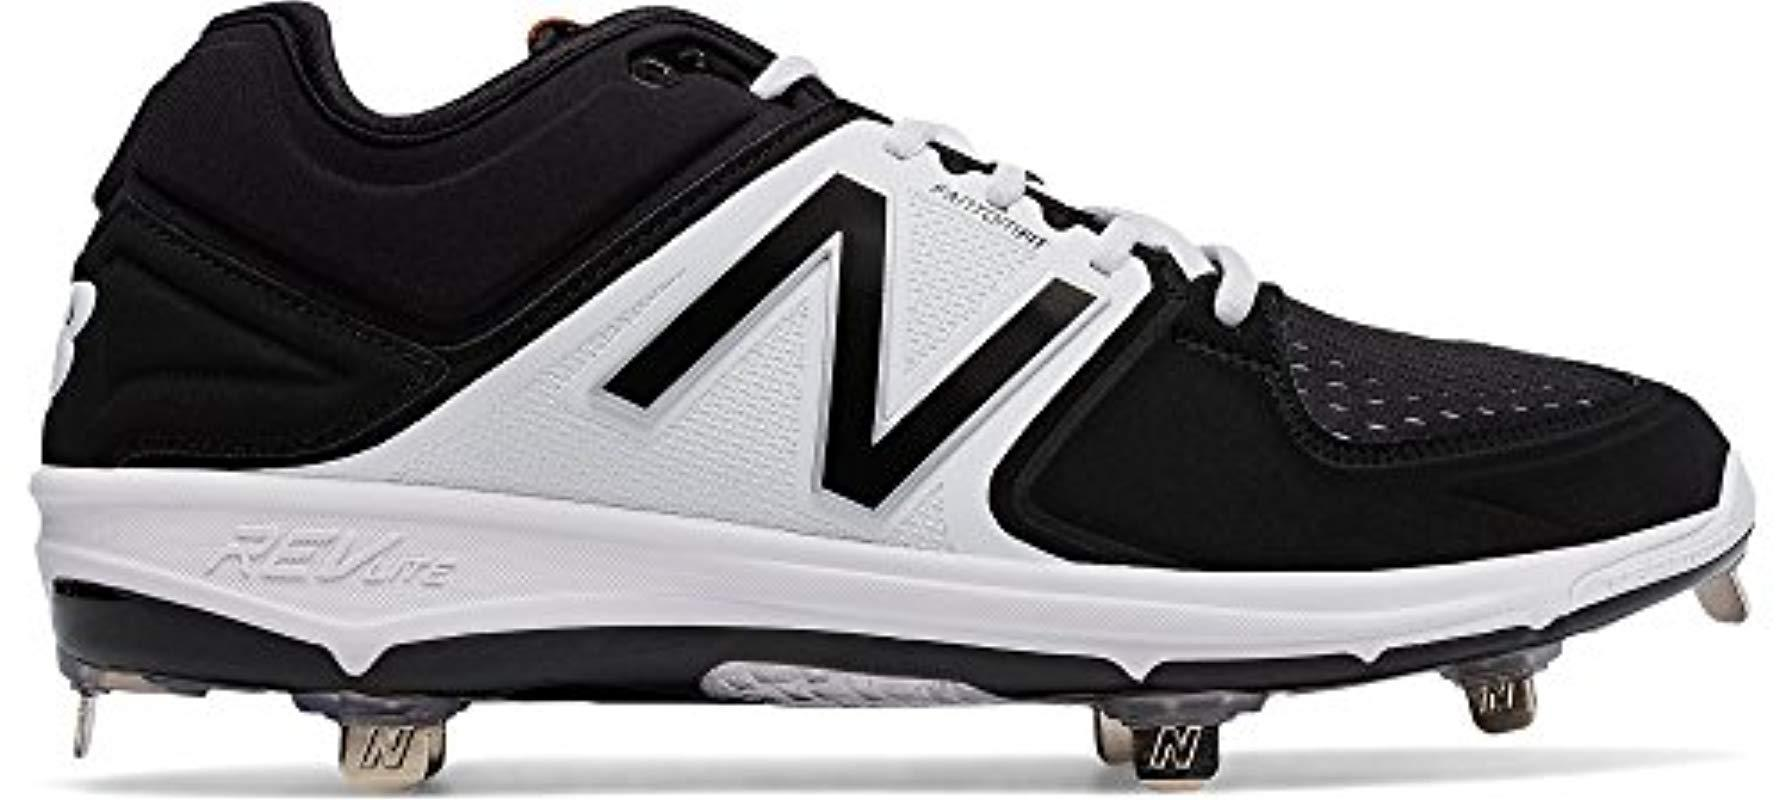 a07ef71c0828 New Balance - White L3000v3 Metal Baseball Shoe for Men - Lyst. View  fullscreen